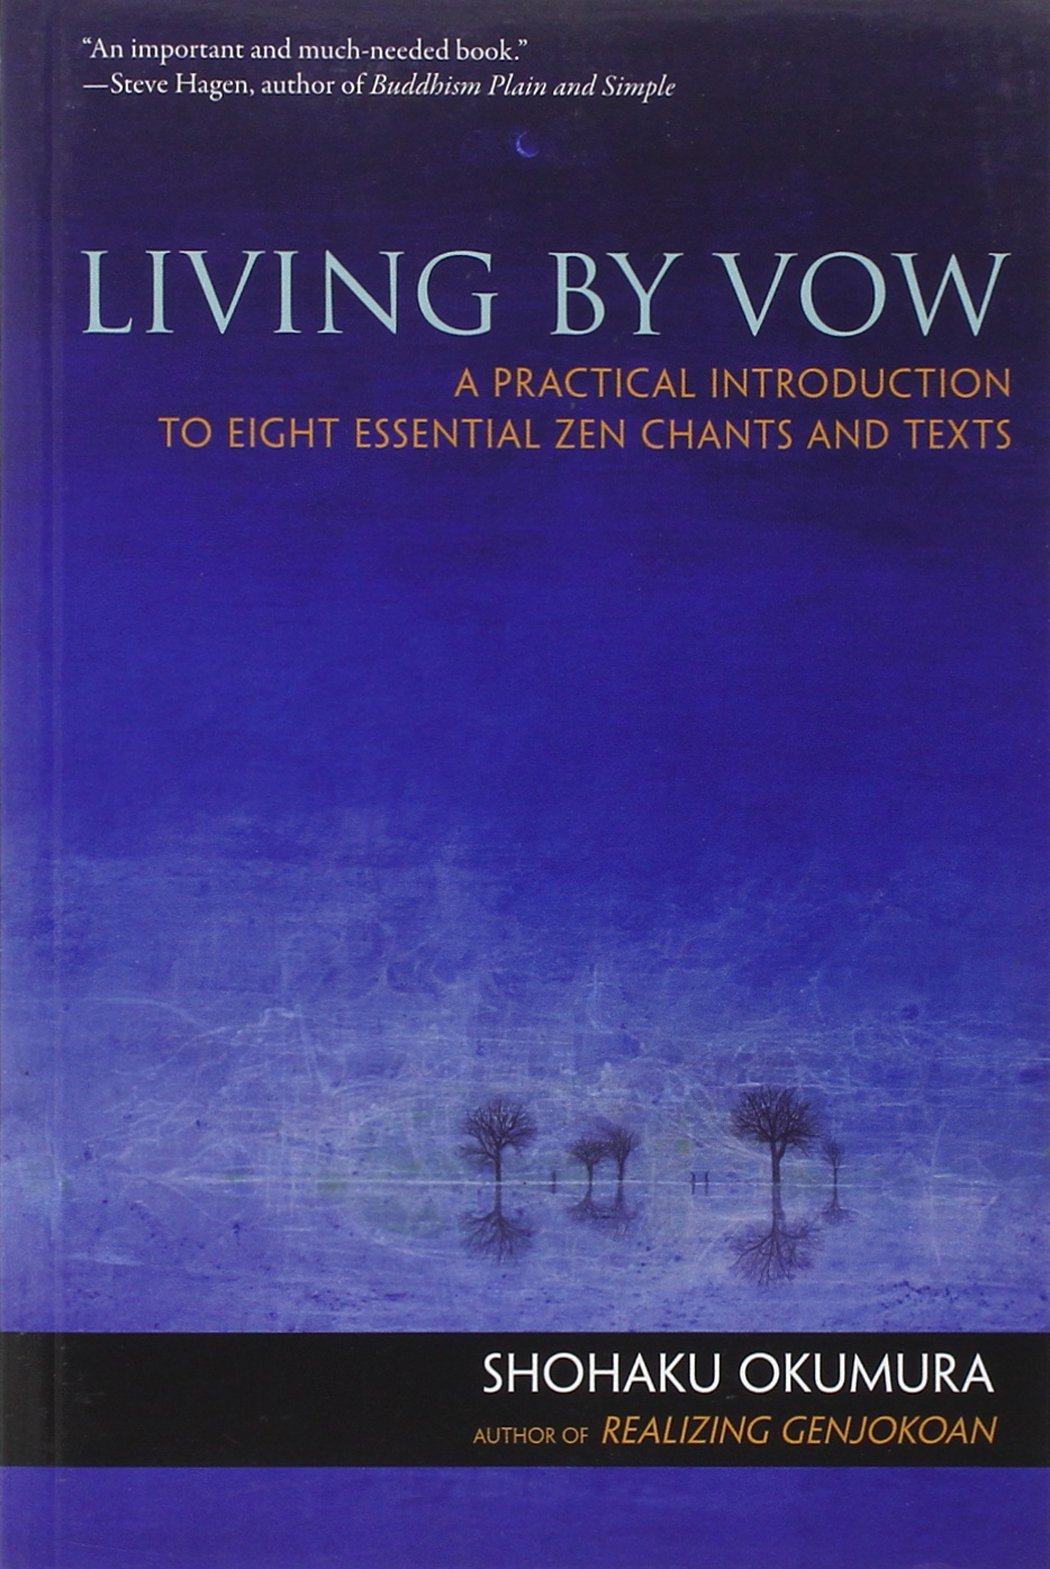 Download Living by Vow: A Practical Introduction to Eight Essential Zen Chants and Texts PDF